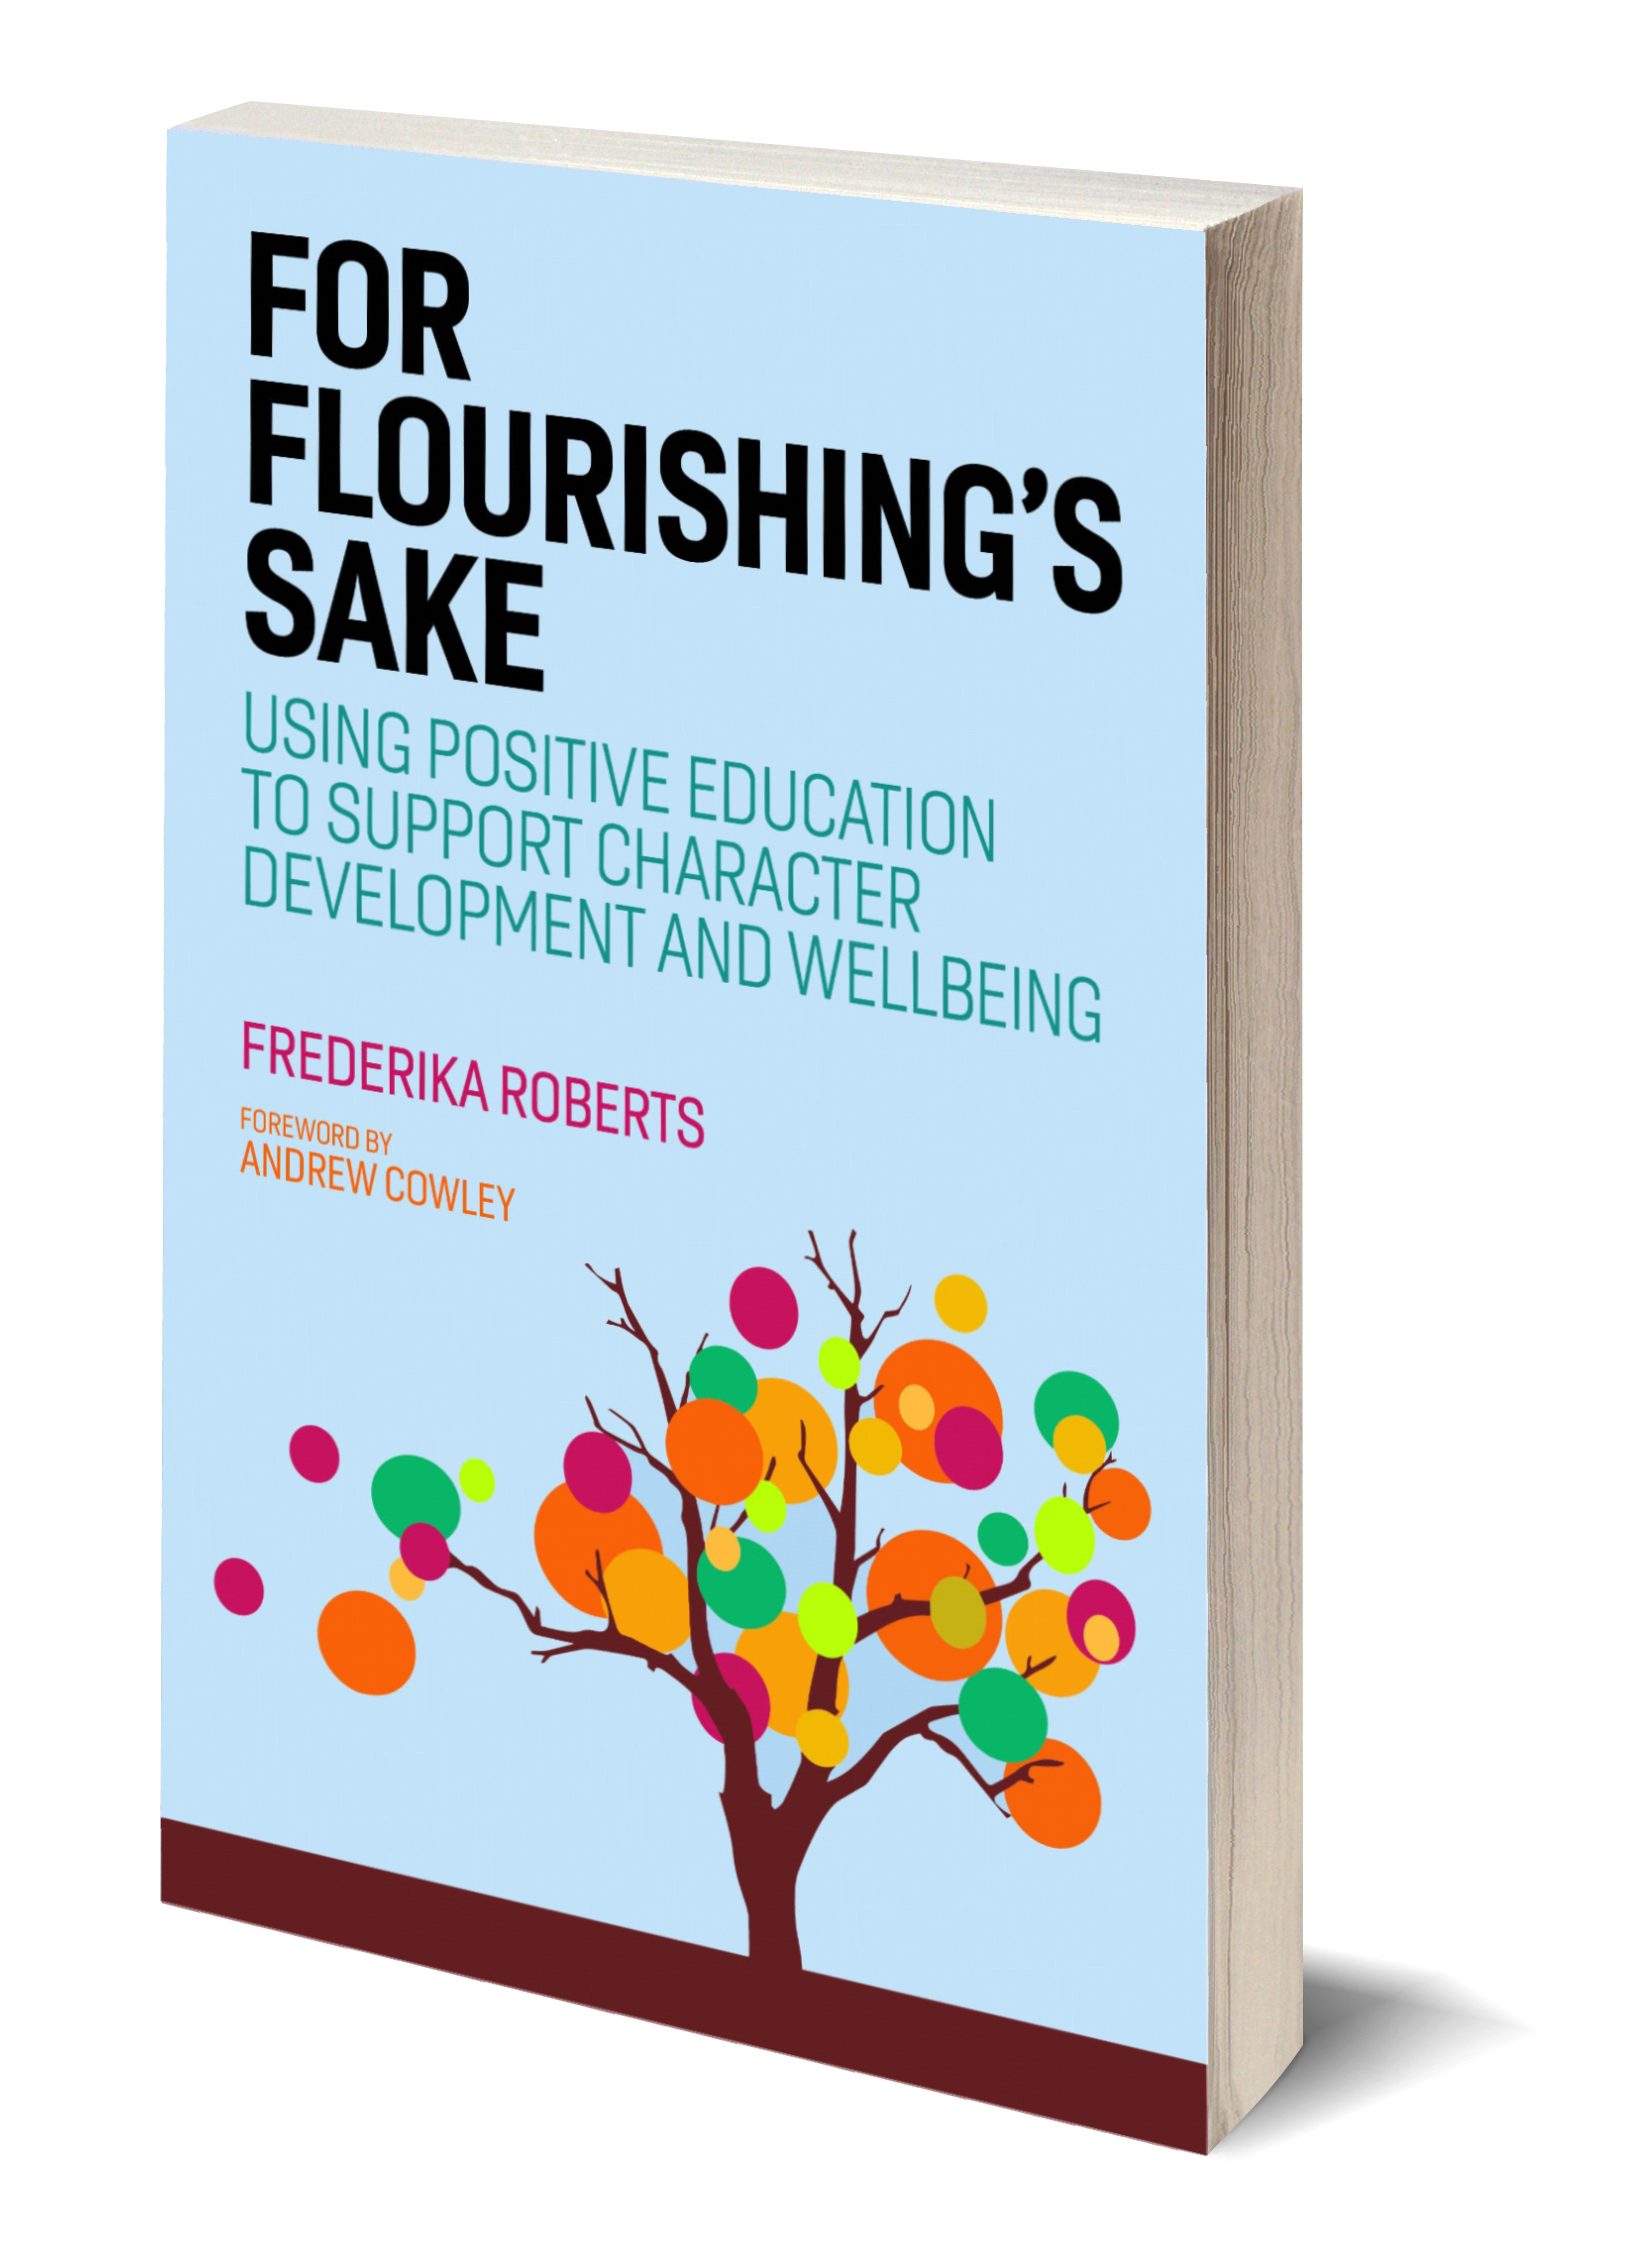 For Flourishing's Sake 3D book cover